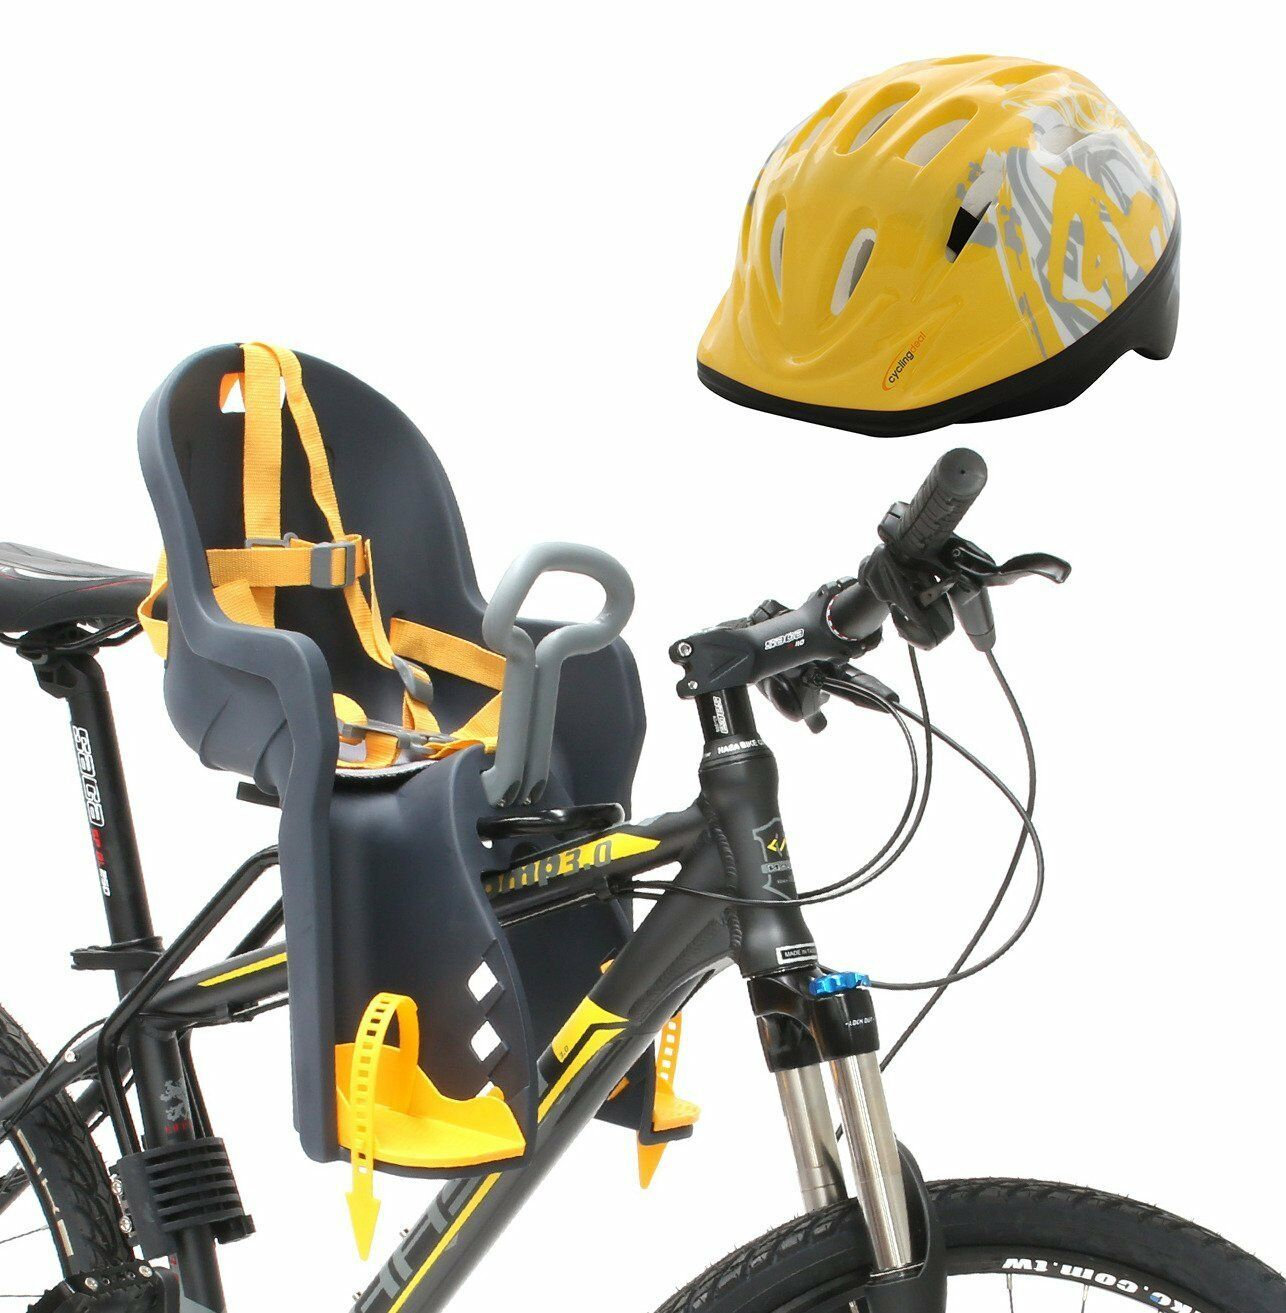 Bike Front Baby Seat Carrier  with Handrail and Helmet  new sadie